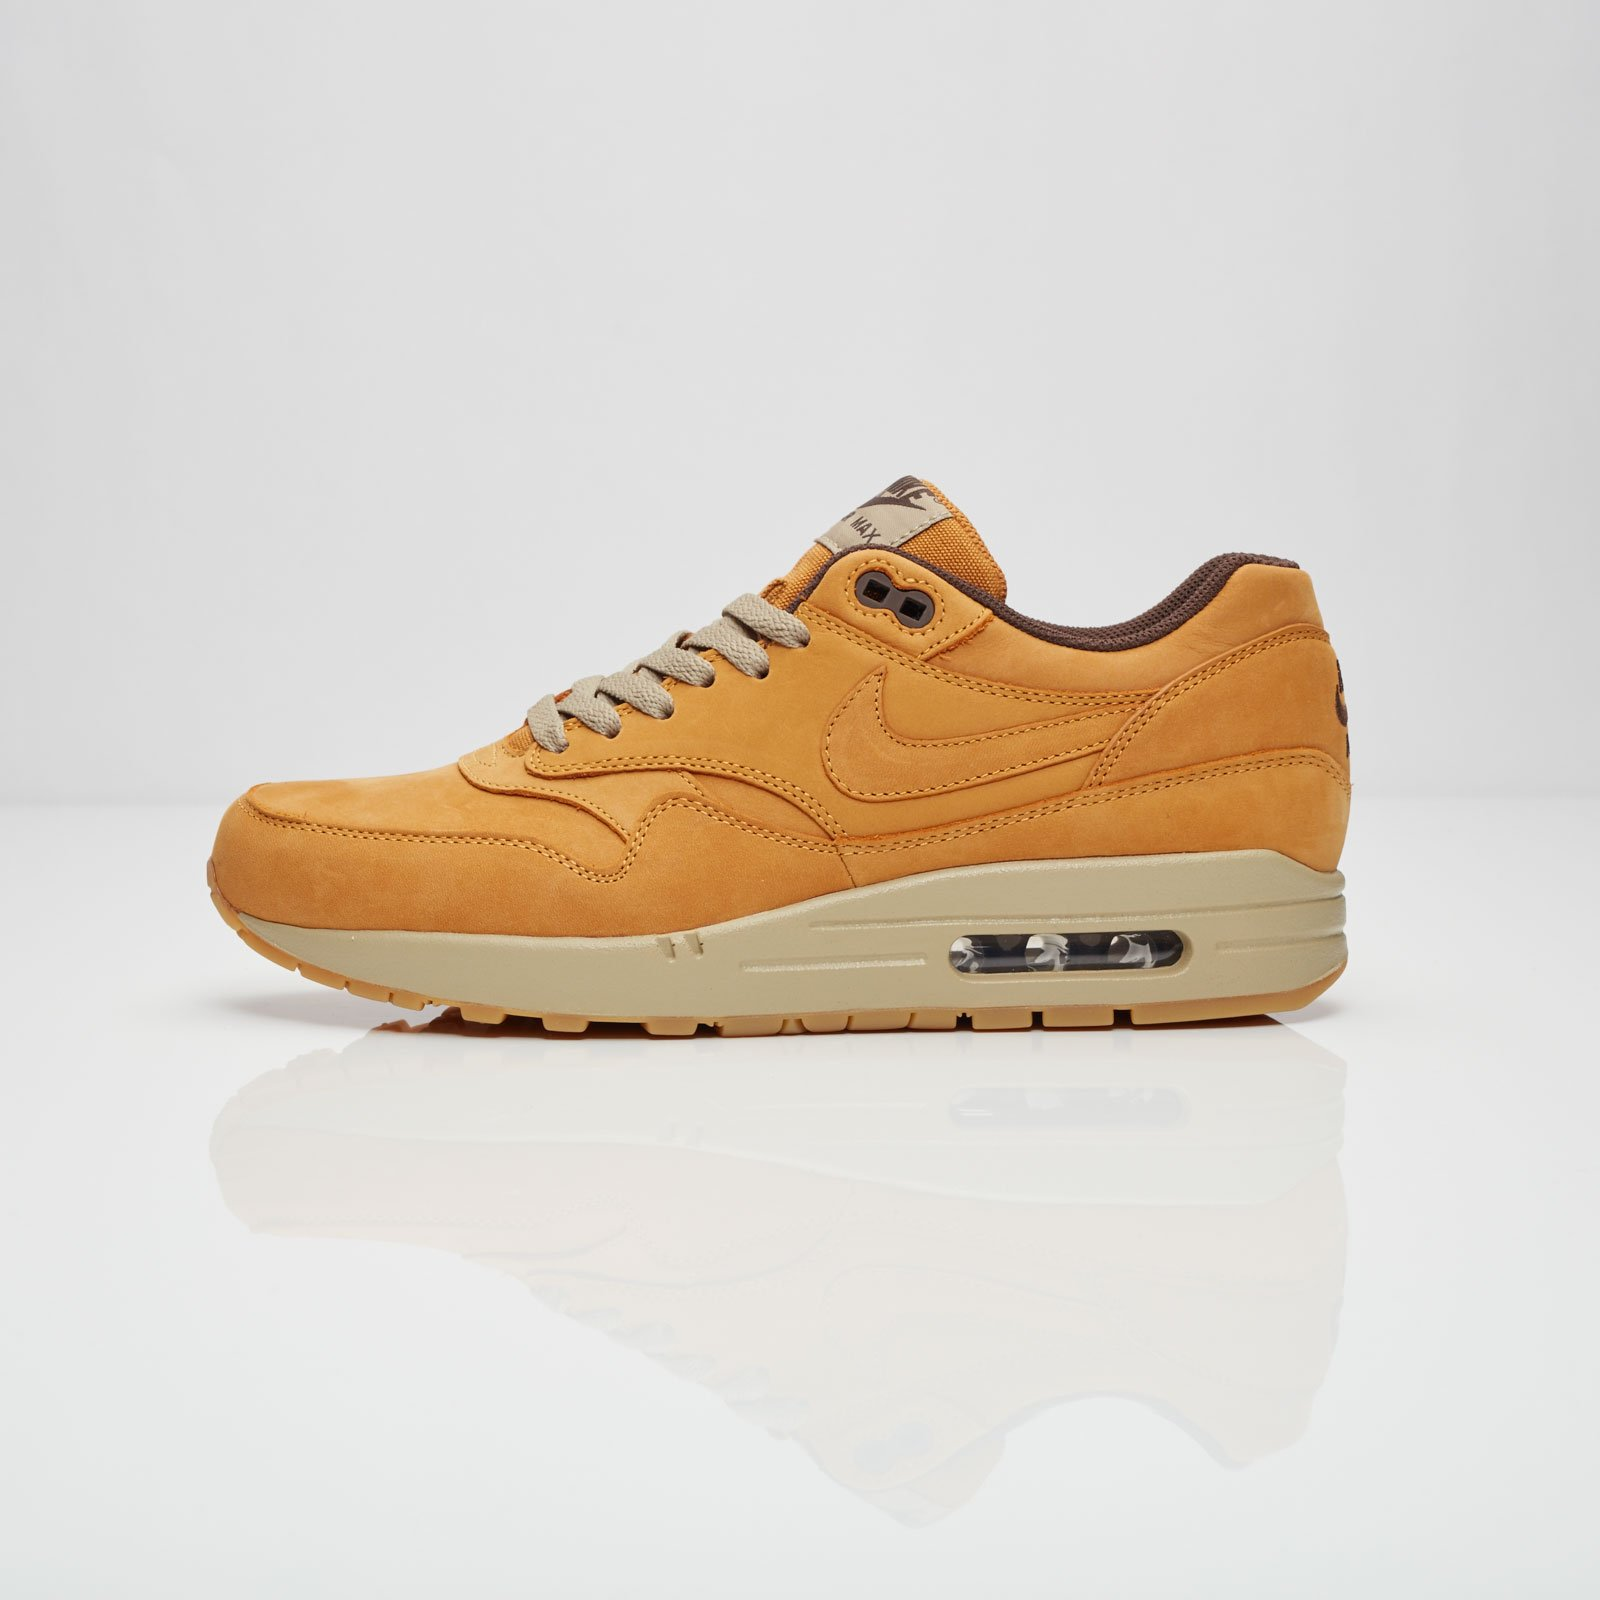 the latest c5819 35e16 Nike Air Max 1 Leather Premium - 705282-700 - Sneakersnstuff   sneakers    streetwear online since 1999